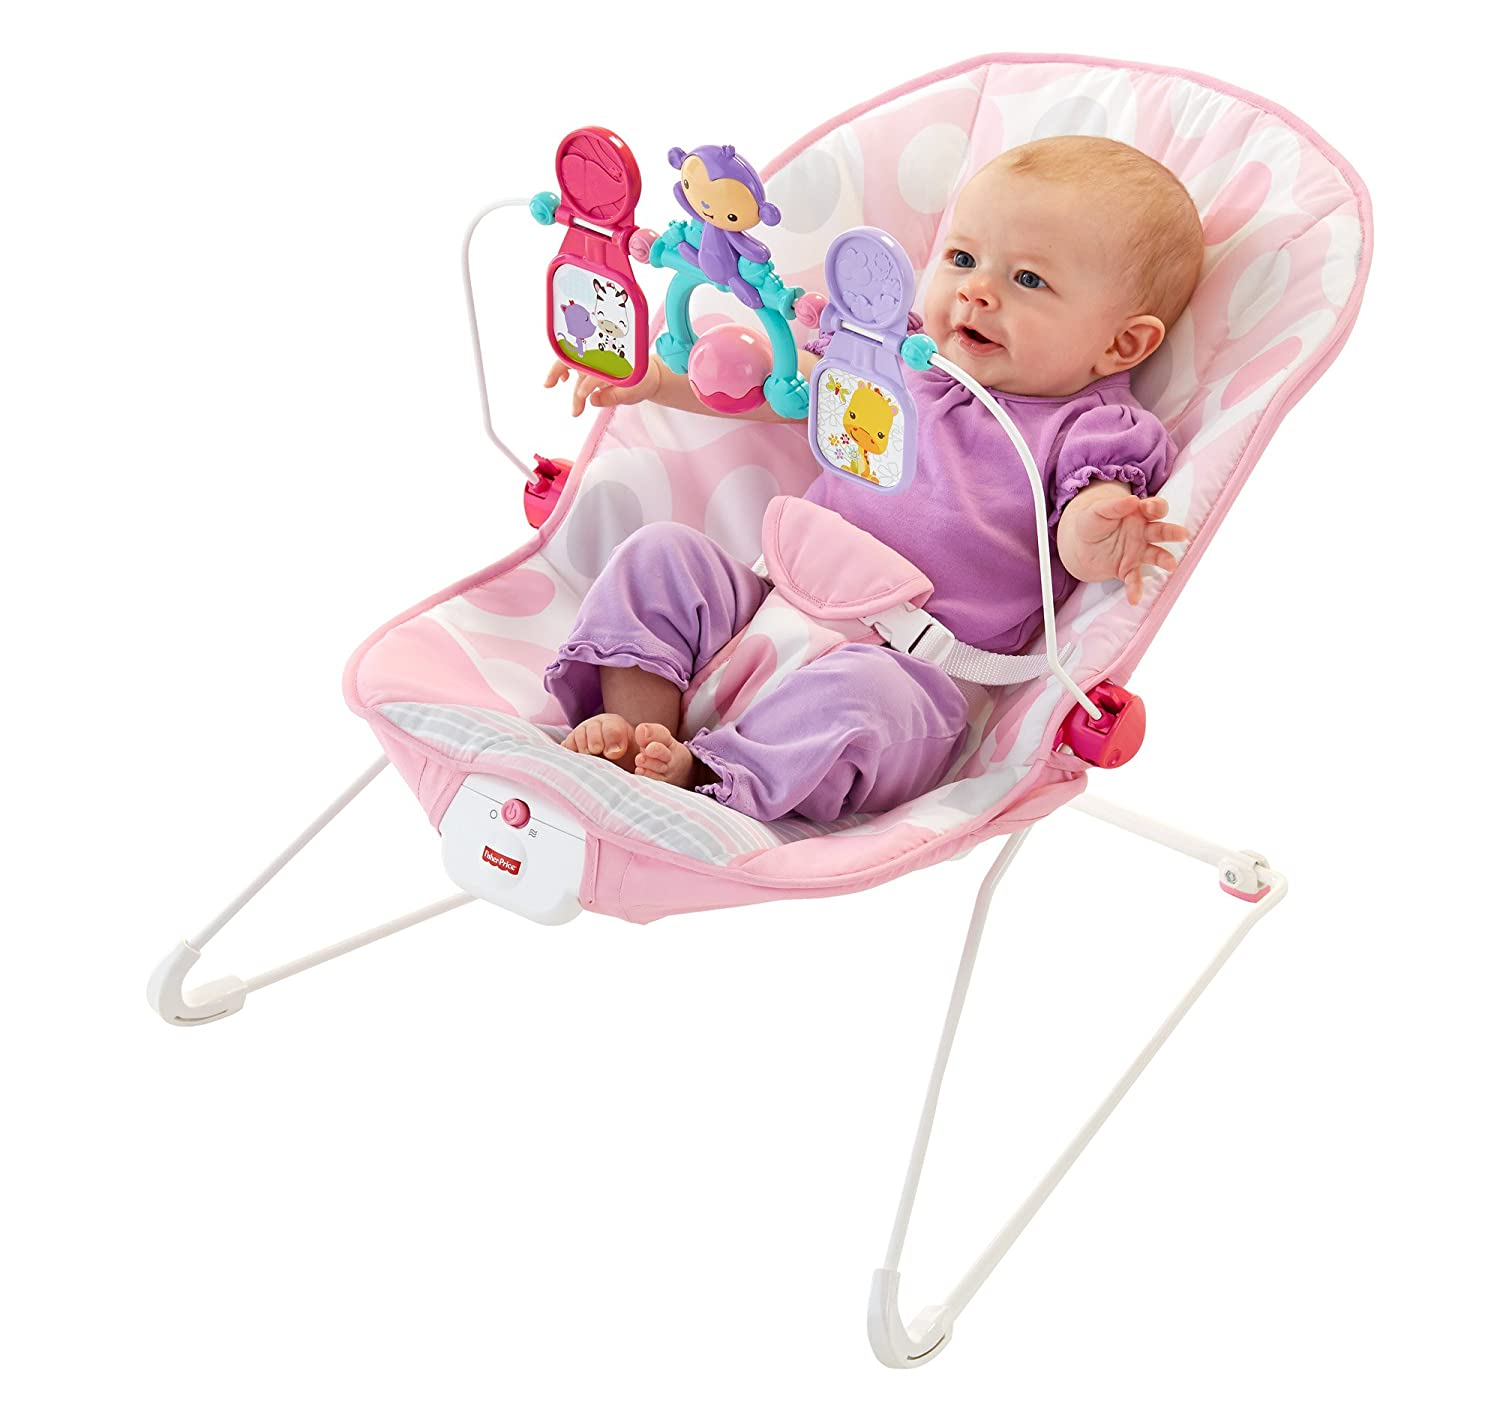 Amazon Fisher Price Baby s Bouncer Pink Ellipse e Size